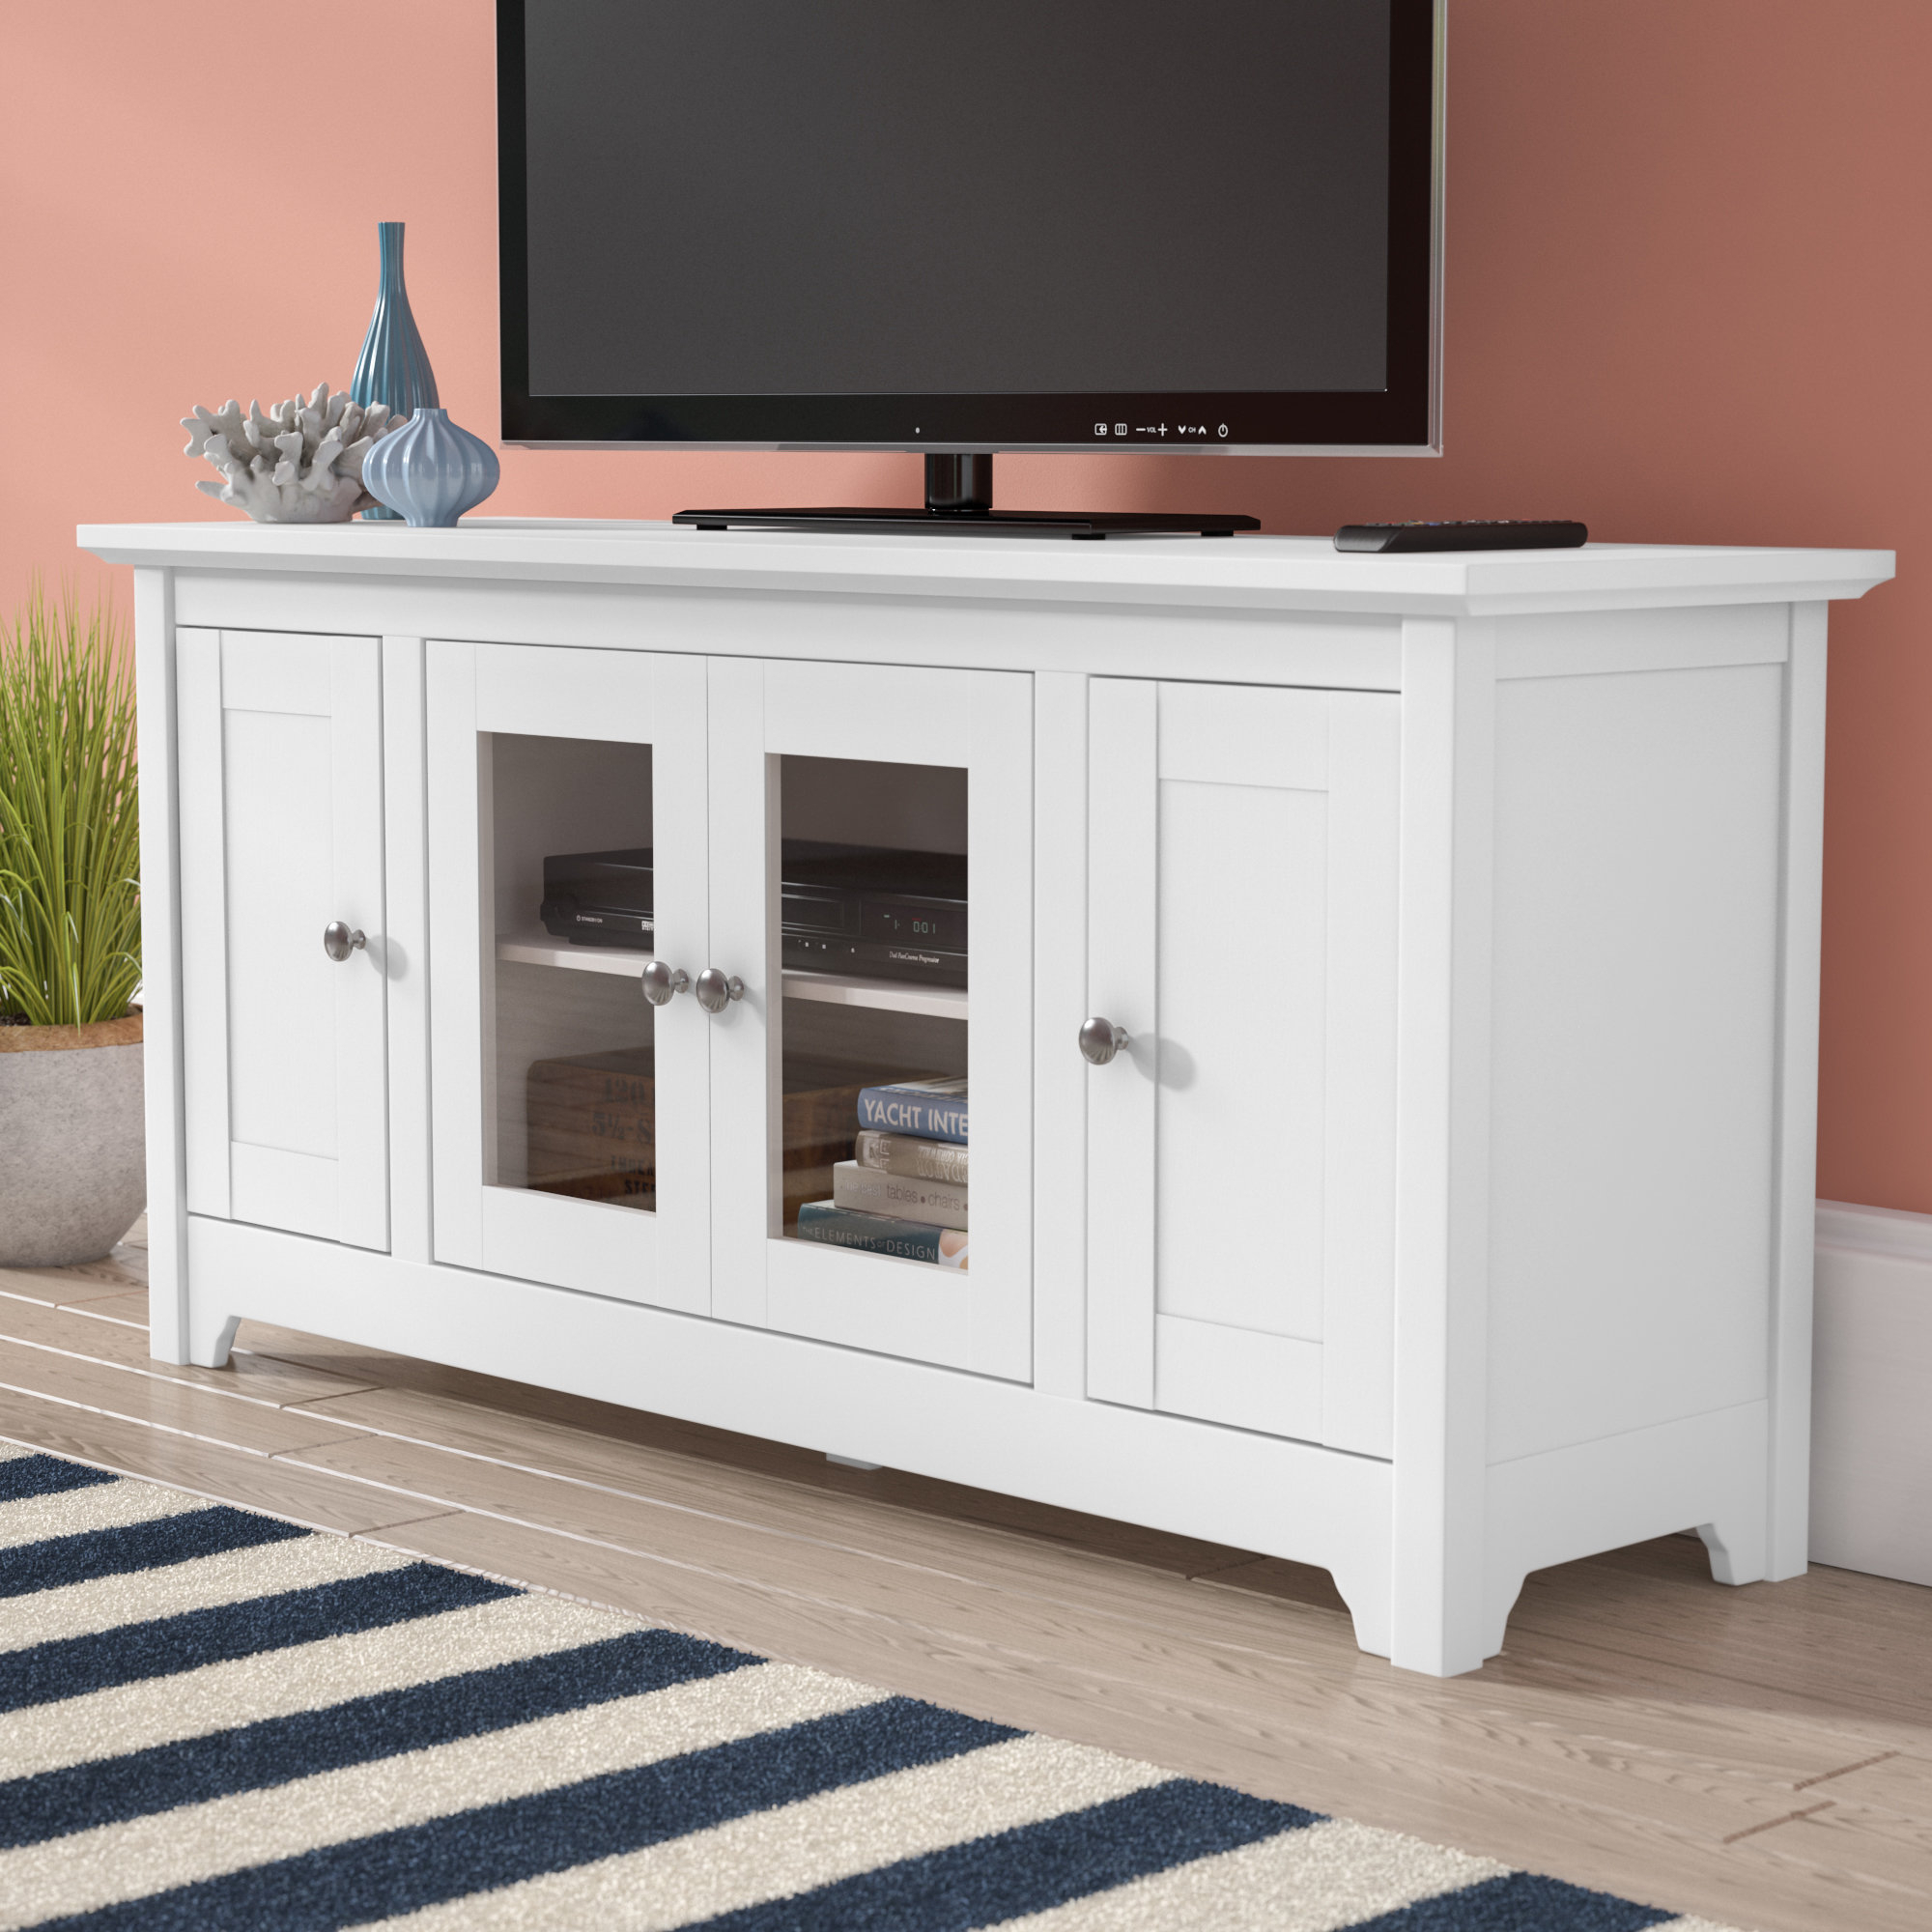 Tv Stands & Entertainment Centers You'll Love | Wayfair With Kenzie 60 Inch Open Display Tv Stands (View 13 of 30)